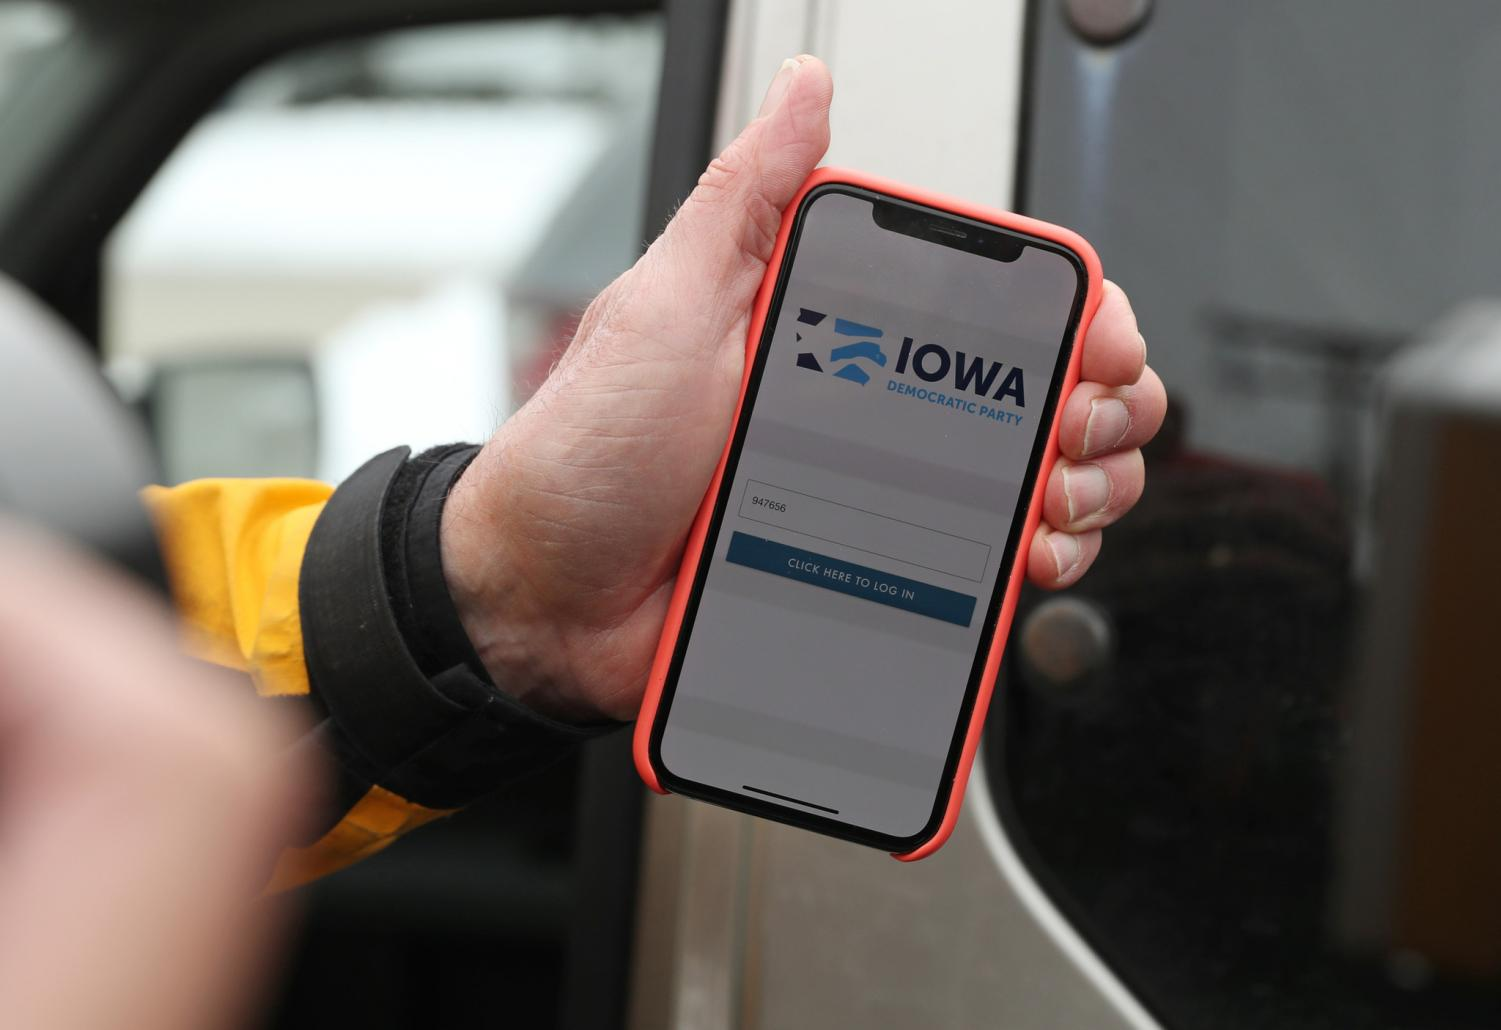 Precinct chair Carl Voss, of Des Moines, shows the phone app he used for the Iowa Caucus to news media at the Iowa Democratic Party headquarters, Feb. 4, 2020, in Des Moines.